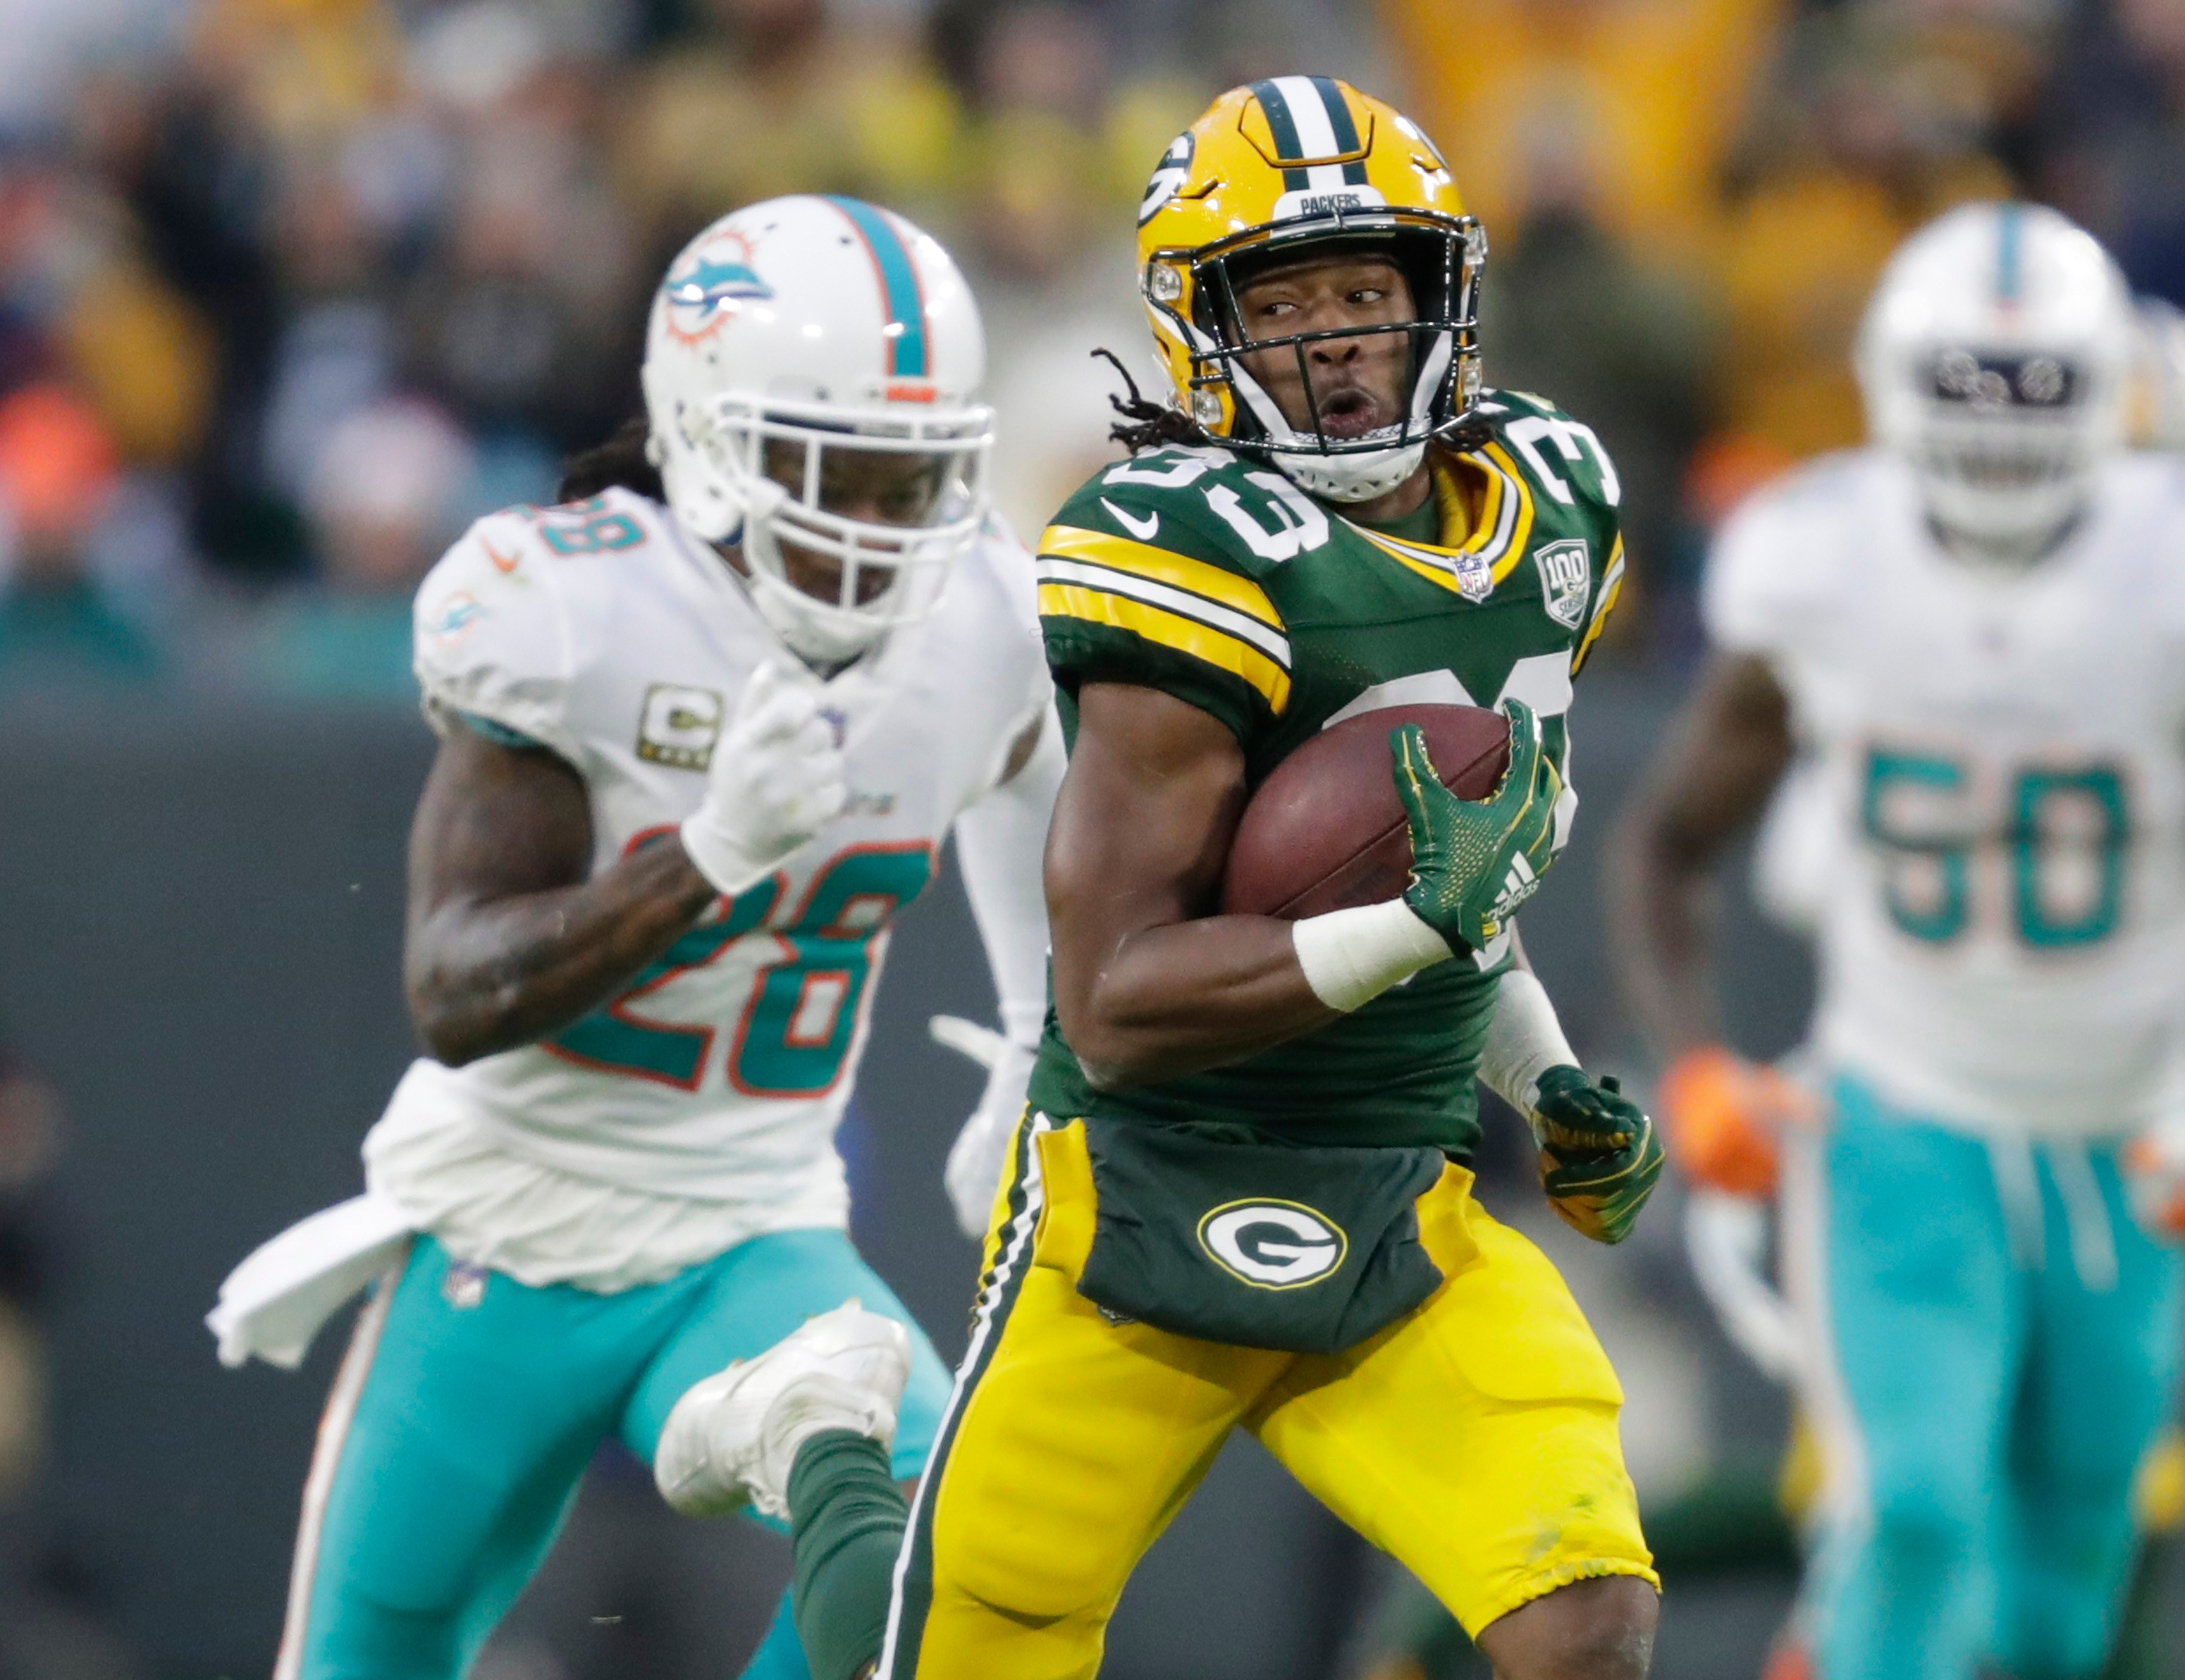 Seven Key Takeaways from the Packers 31-12 Win Over the Dolphins